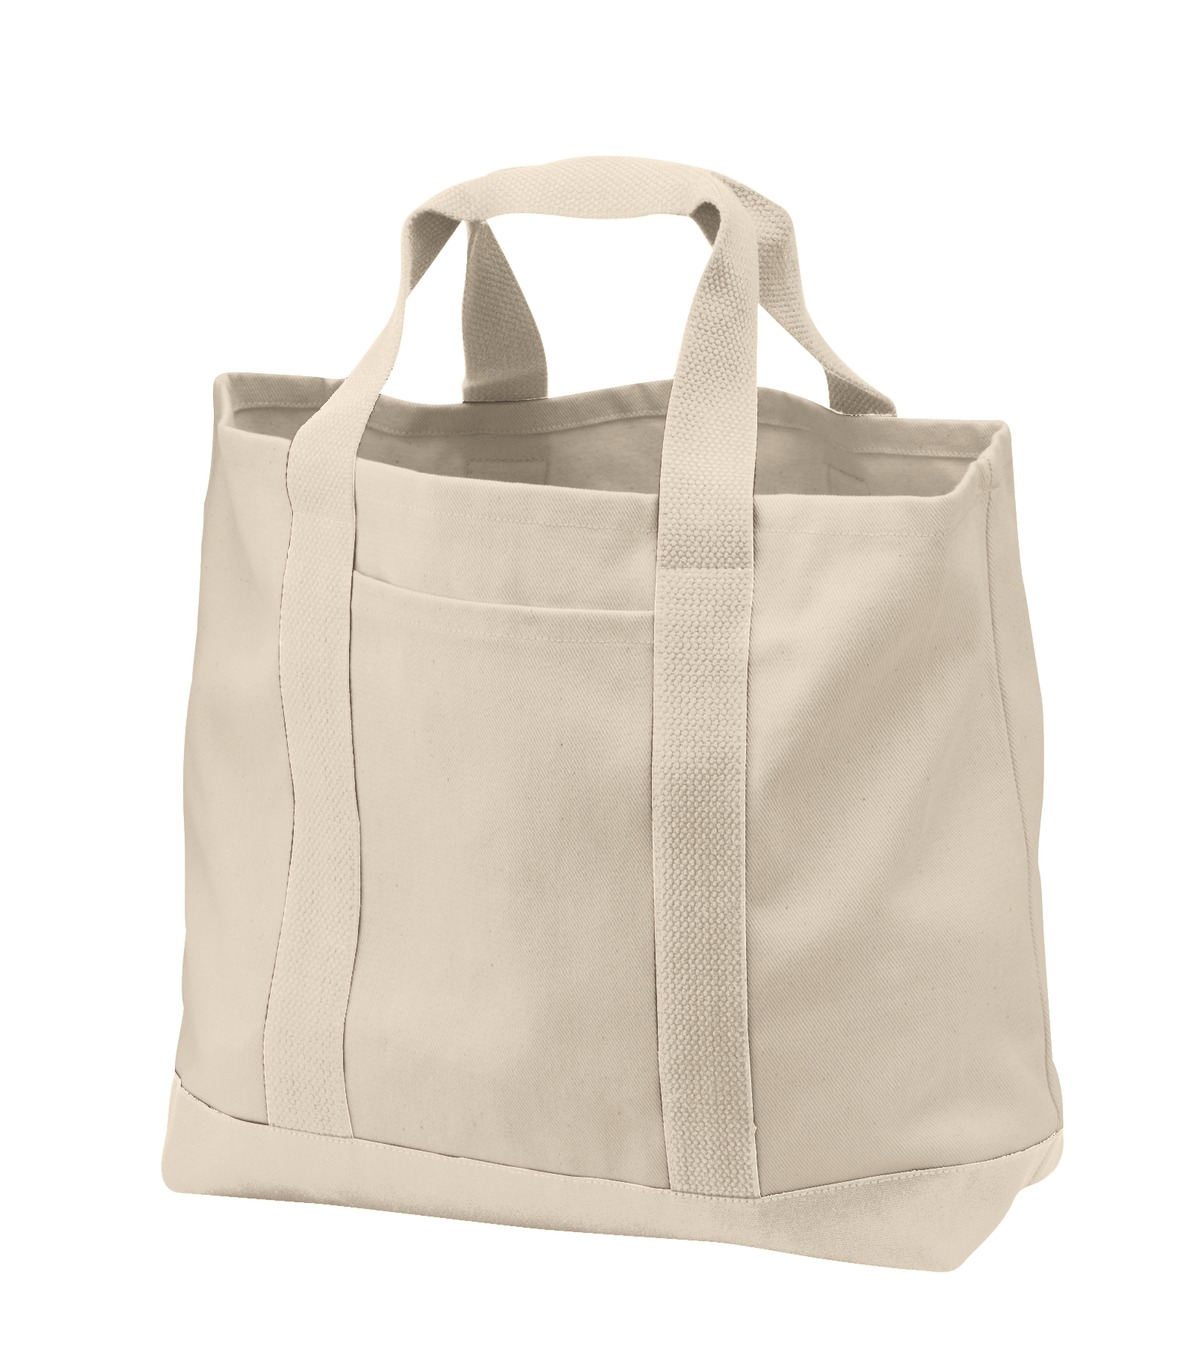 Port Authority ®  - Two-Tone Shopping Tote.  B400 - Natural/ Natural